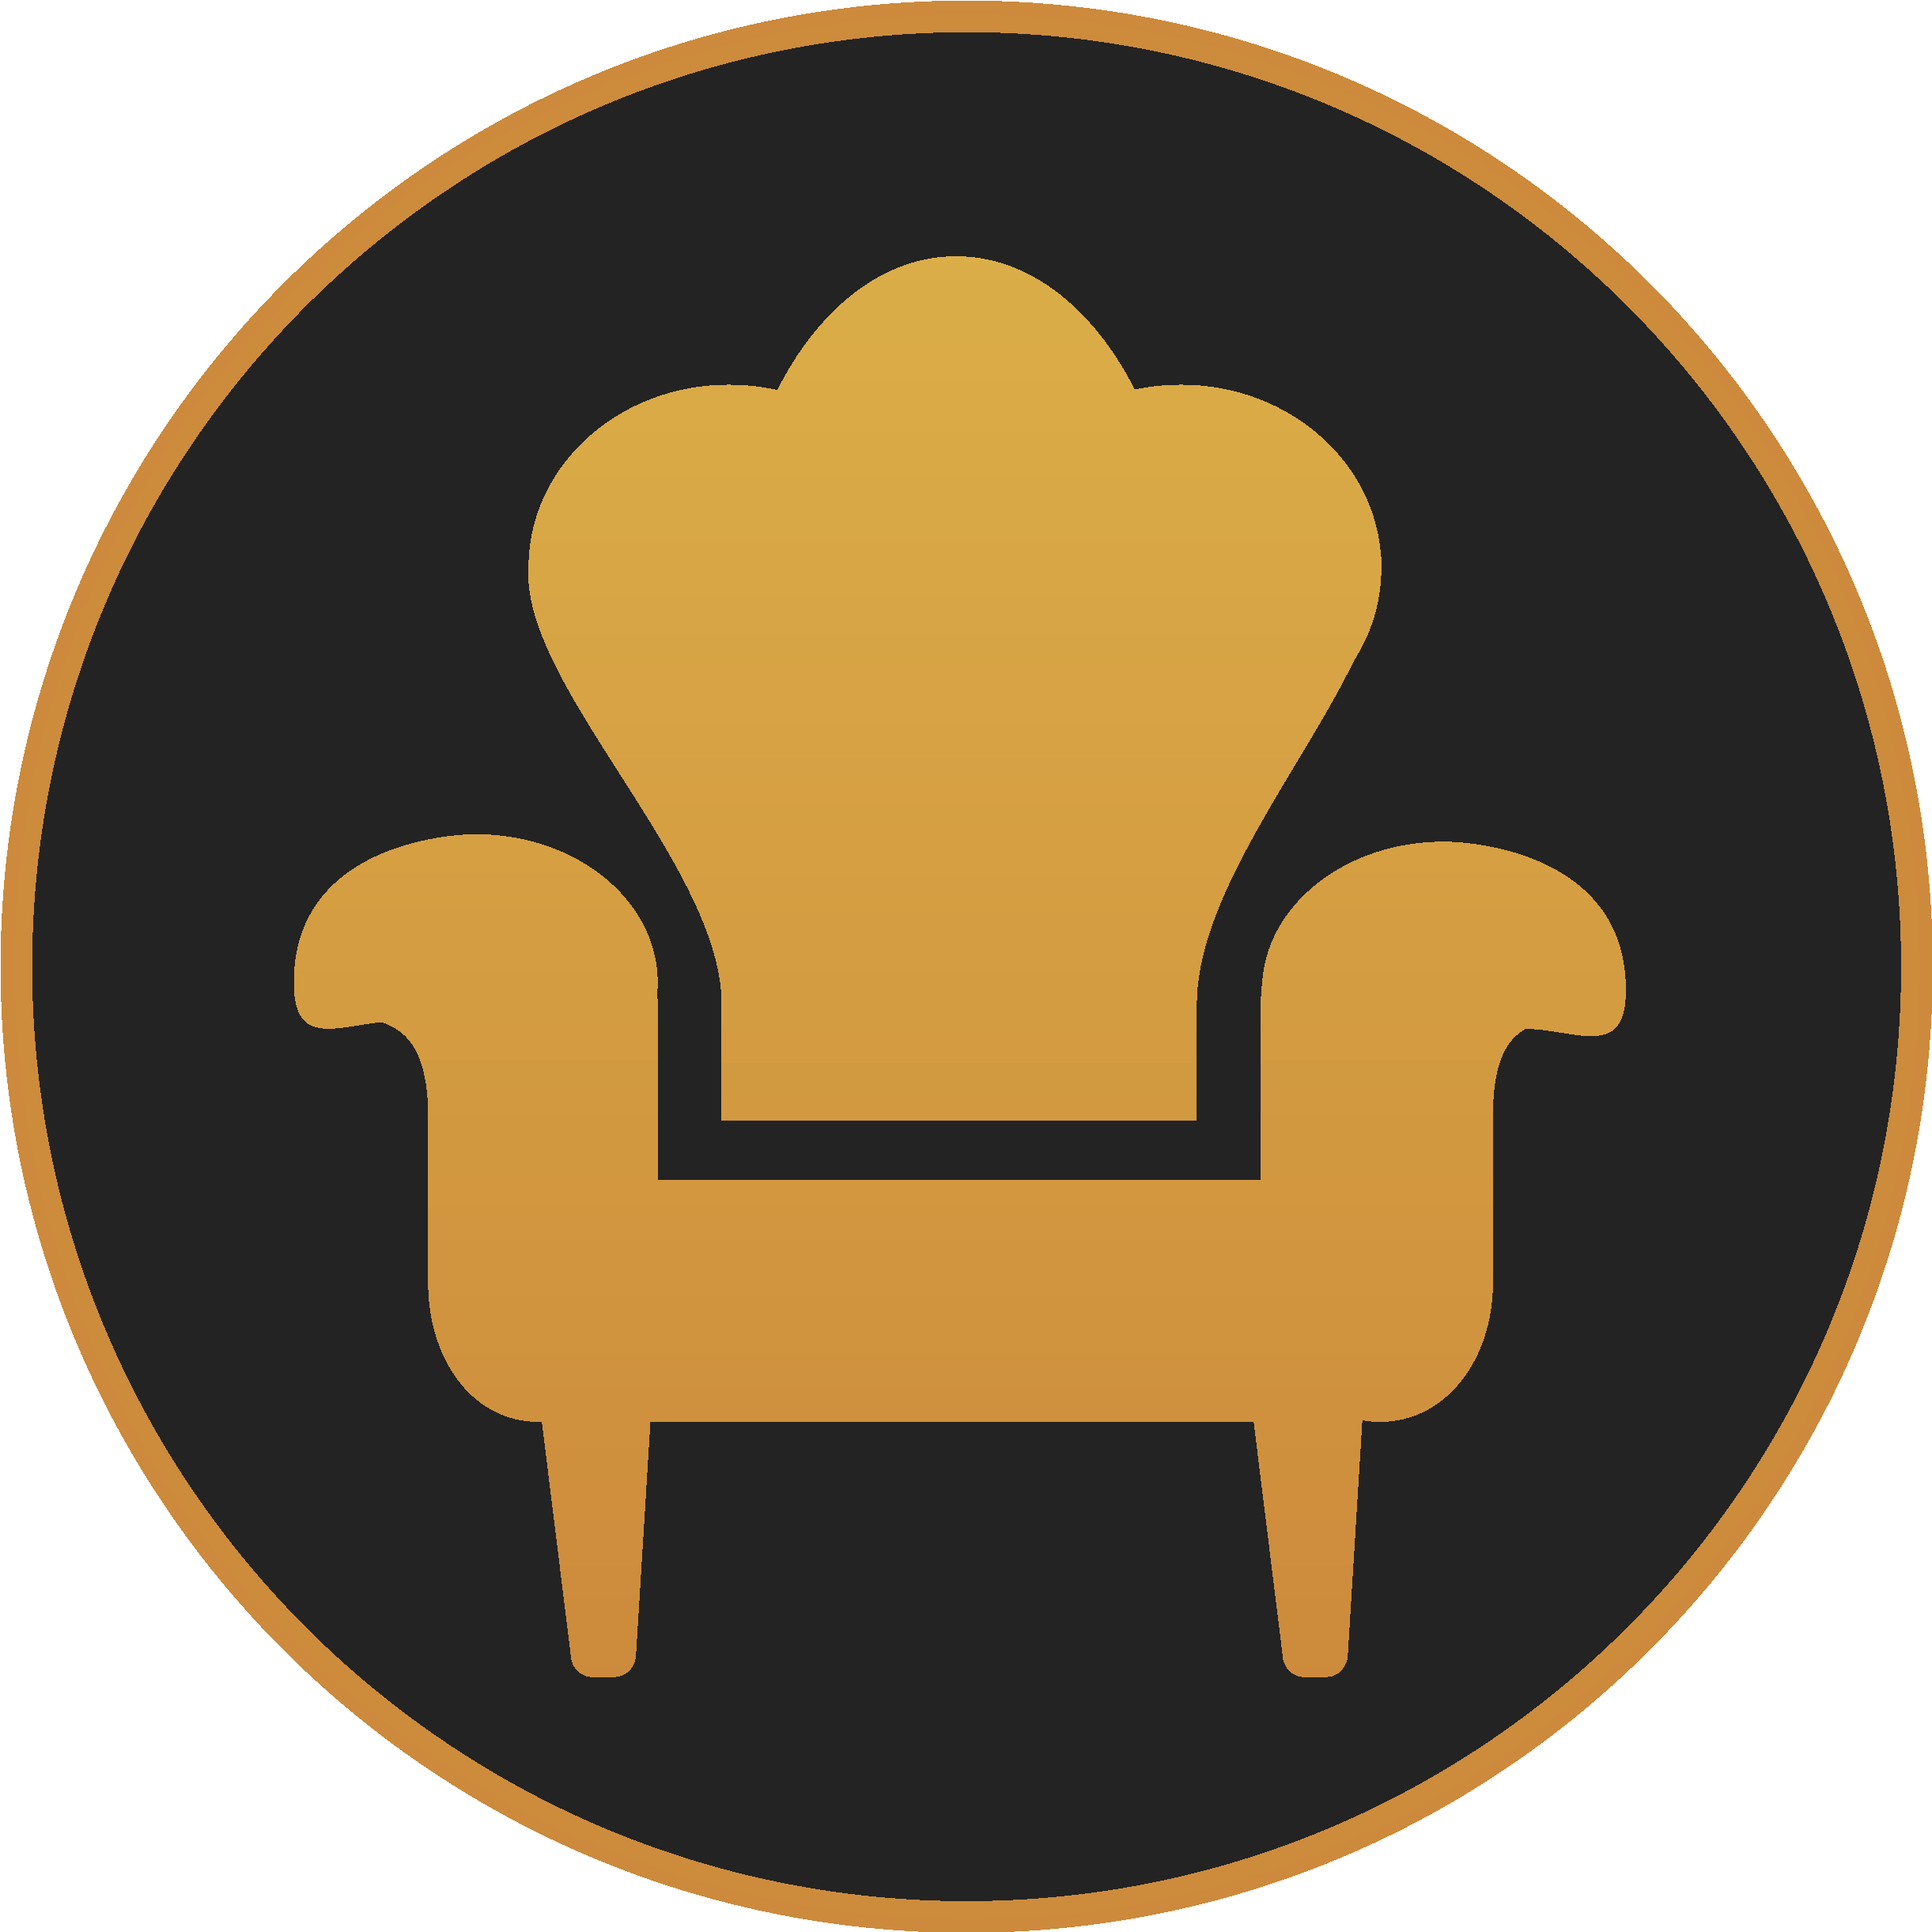 Throne-Sticker-Logo-Only.png